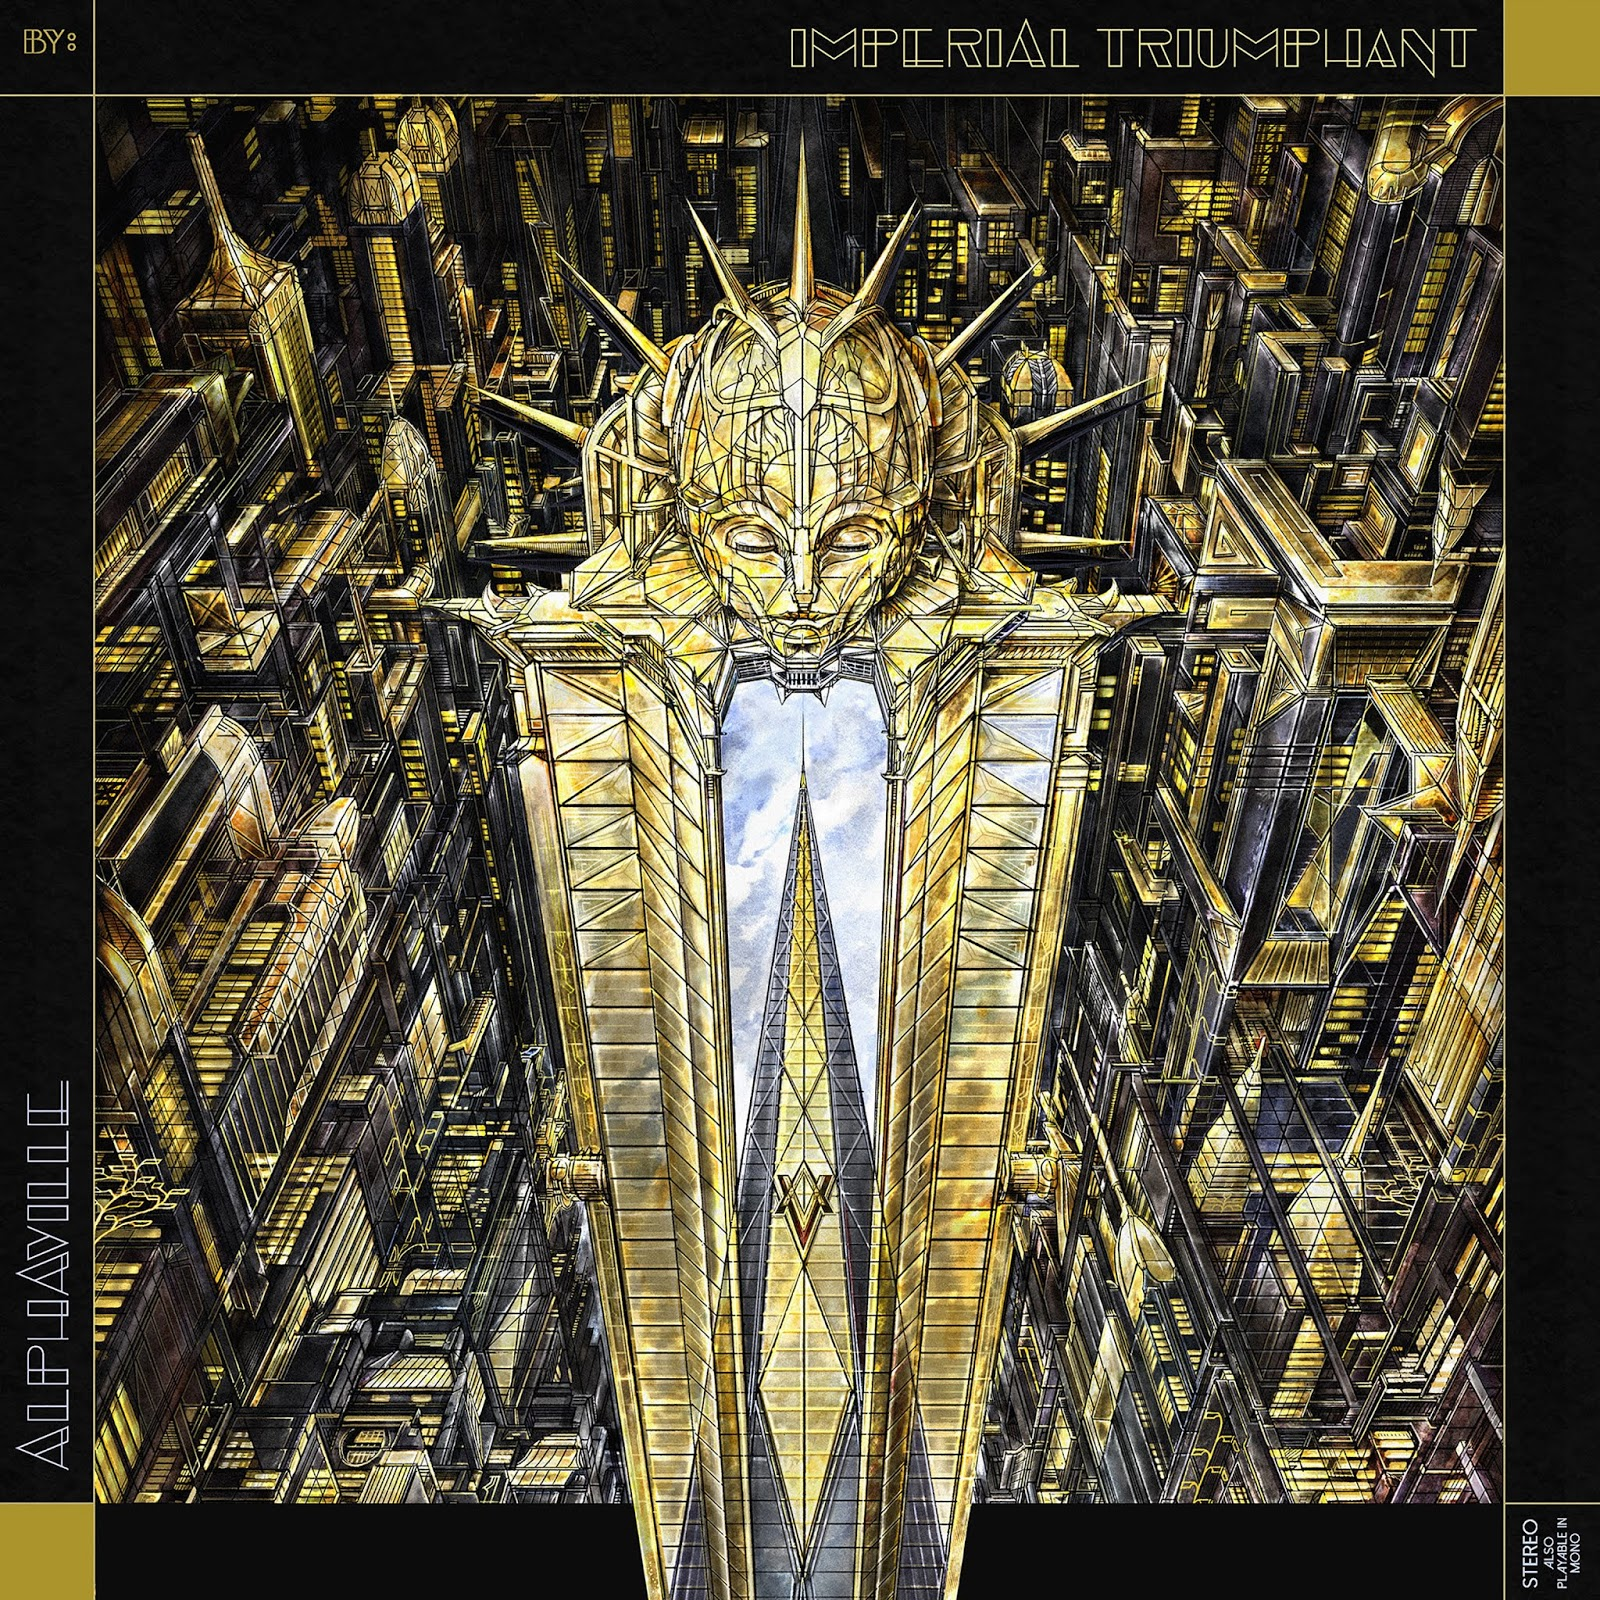 Imperial Triumphant cover art